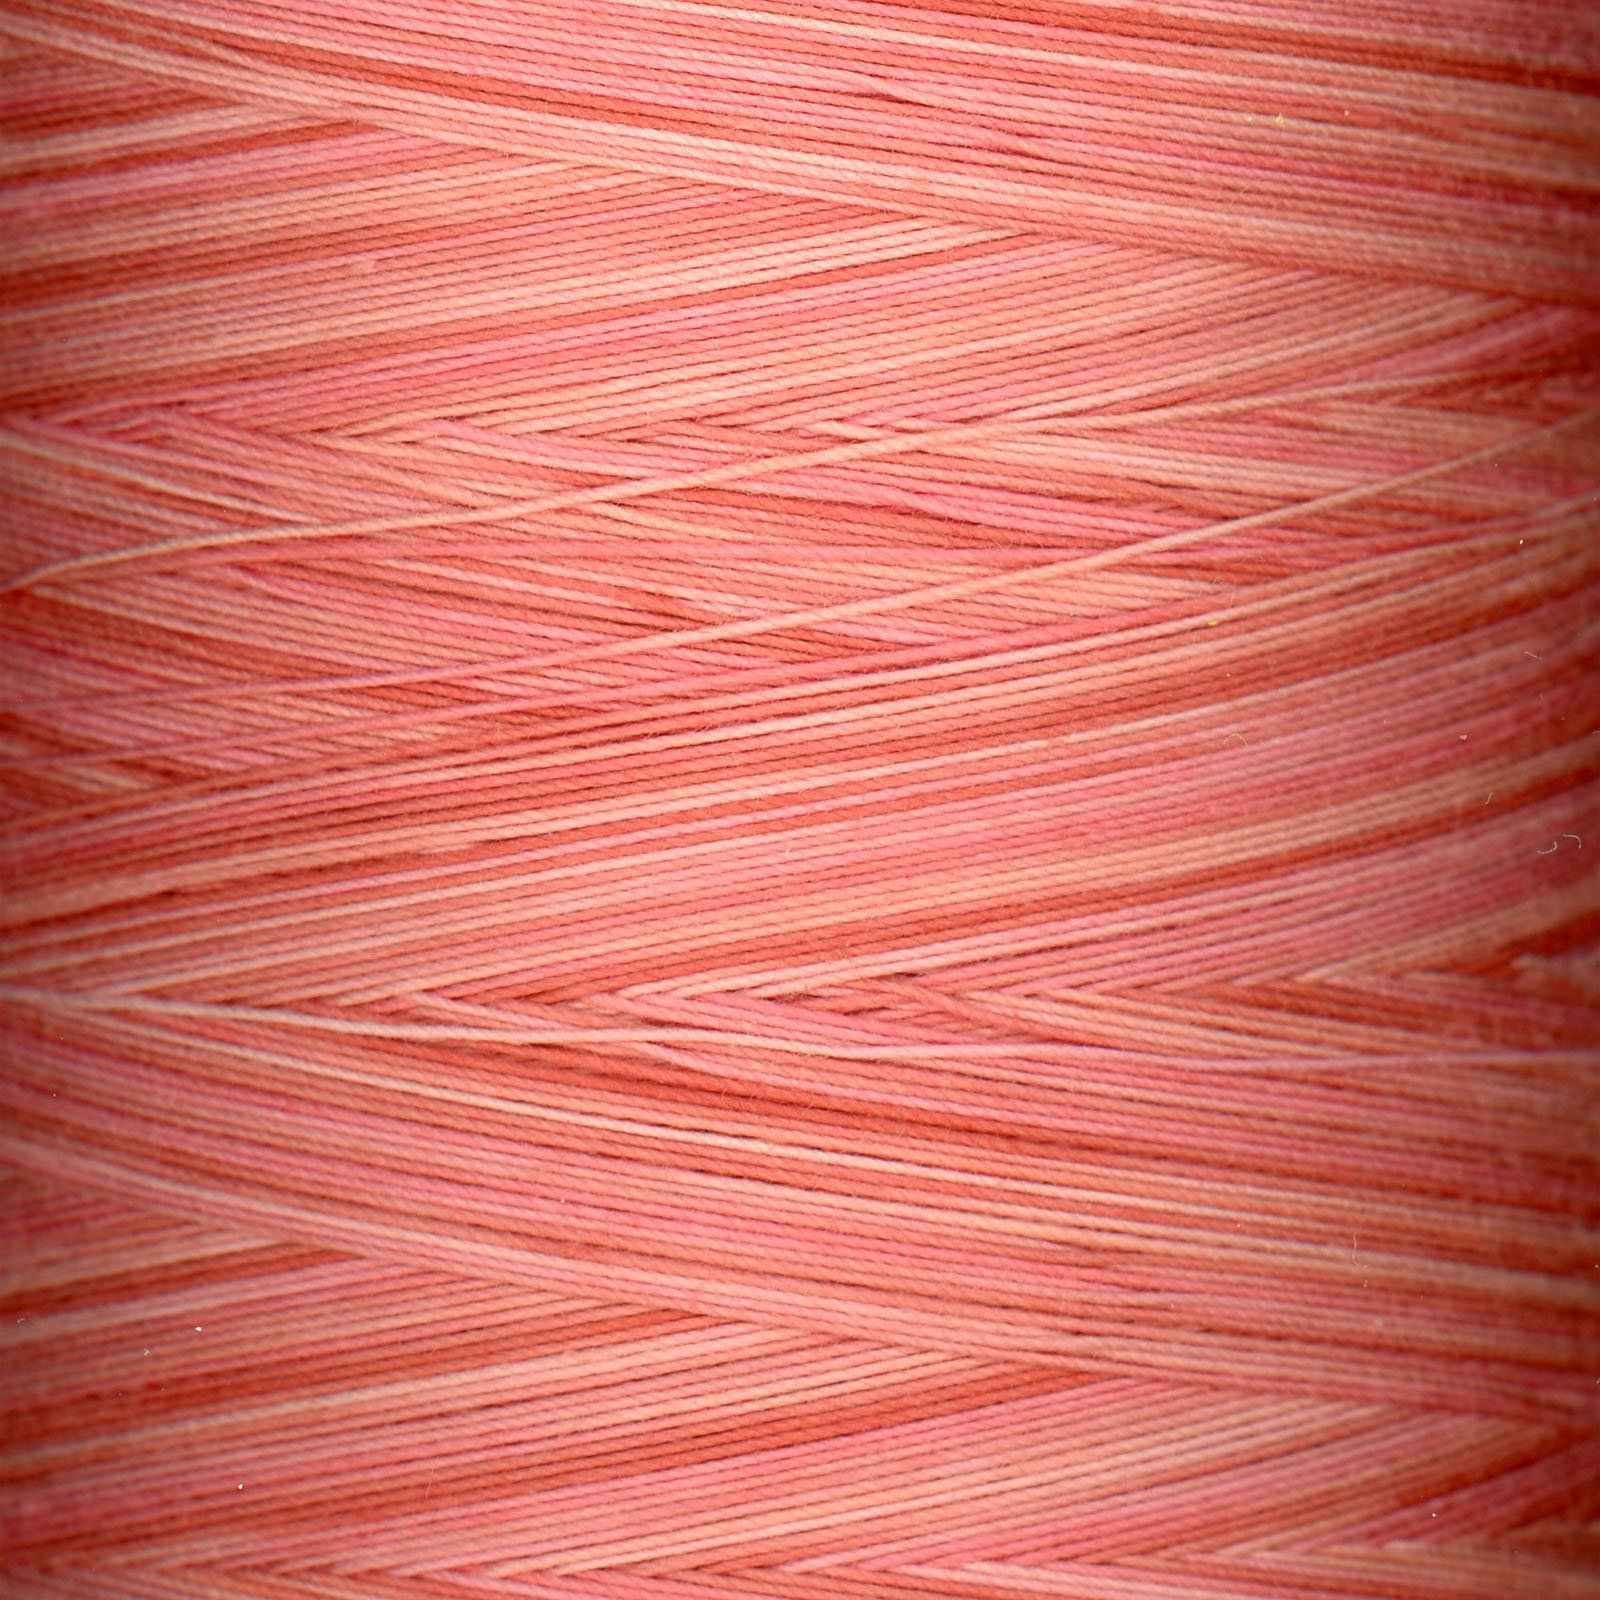 King Tut Variegated Thread #908